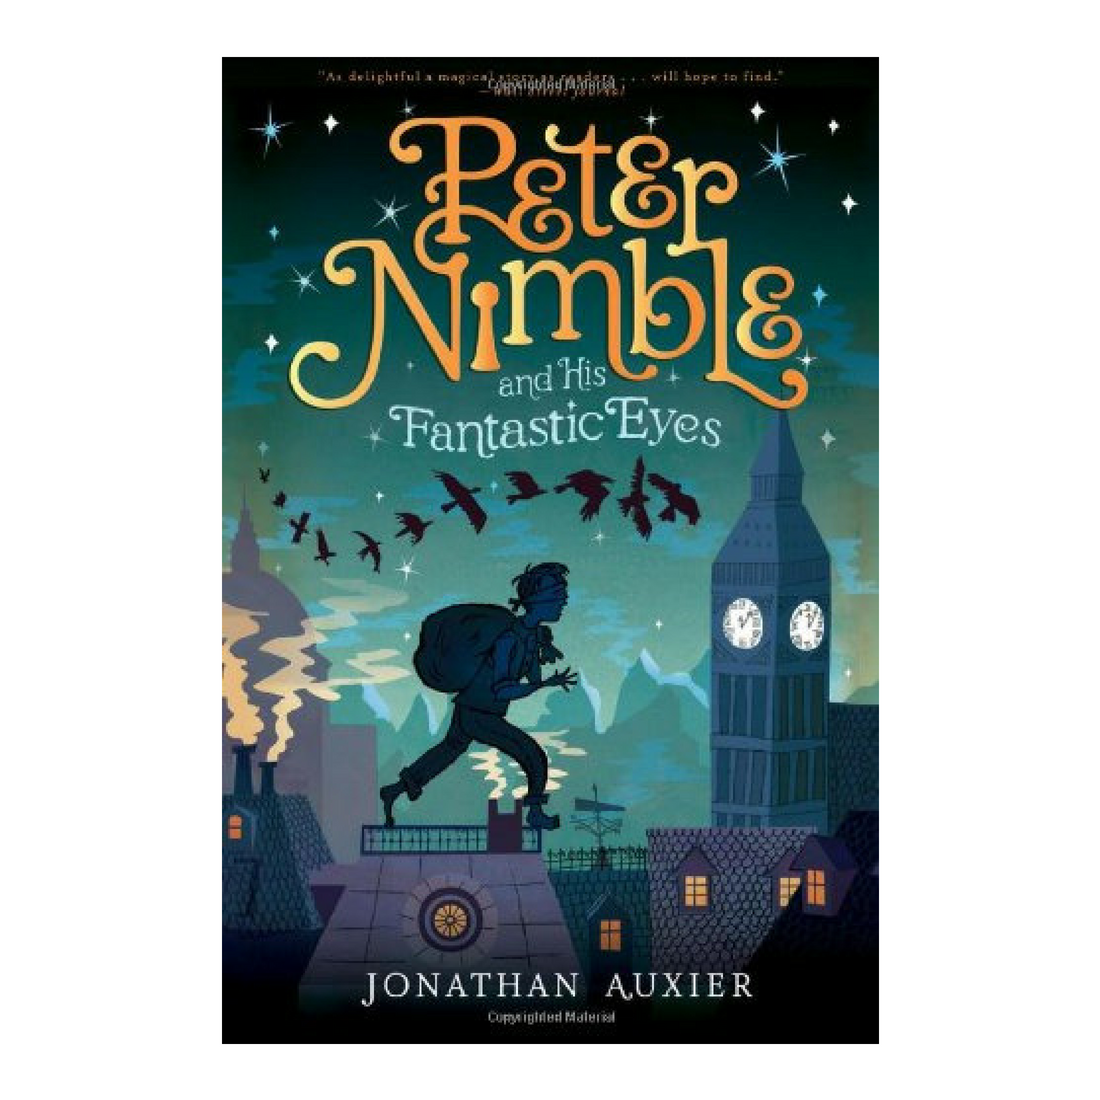 Peter Nimble and His Fantastic Eyes - A captivating original fantasy about a 10 year old boy named Peter – originally found by sailors in a bobbing basket with a raven that had pecked out his eyes. Like the orphan Oliver Twist, Peter grows up on the streets becoming a skilled pick pocket and thief under the control of an unkind master. One day he meets a Haberdasher selling hats, who seems as if he can read Peter's mind. The salesman leads him to a coach containing multiple locks that Peter can't resist opening. Inside he discovers a wooden box containing a set of what appears to be magic eggs. The eggs are actually sets of eyes. The first set of eyes made from the finest gold dust transports Peter to a hidden island which will reveal secrets about his past. Throughout the journey he also discovers the powers of the powers of the slick black onyx eyes and the eyes made of uncut emeralds.